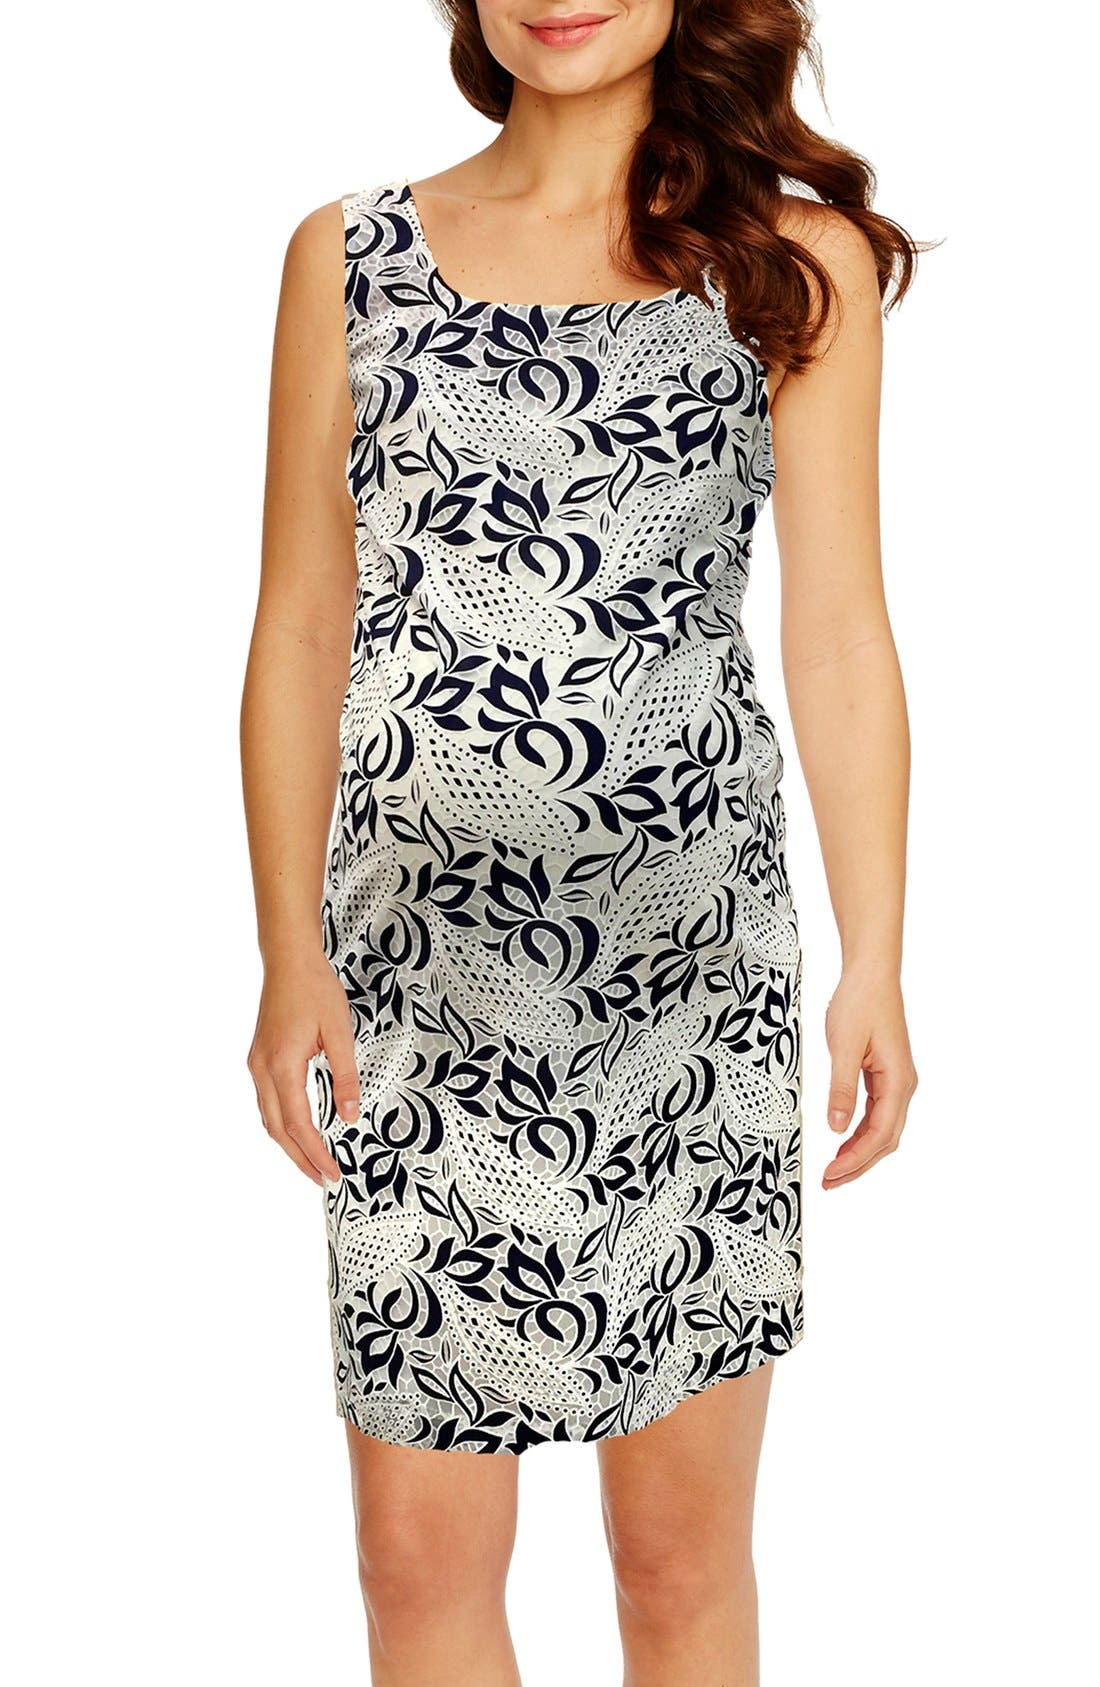 'Victoria' Lace Sleeveless Maternity Dress,                         Main,                         color, NAVY/ WHITE